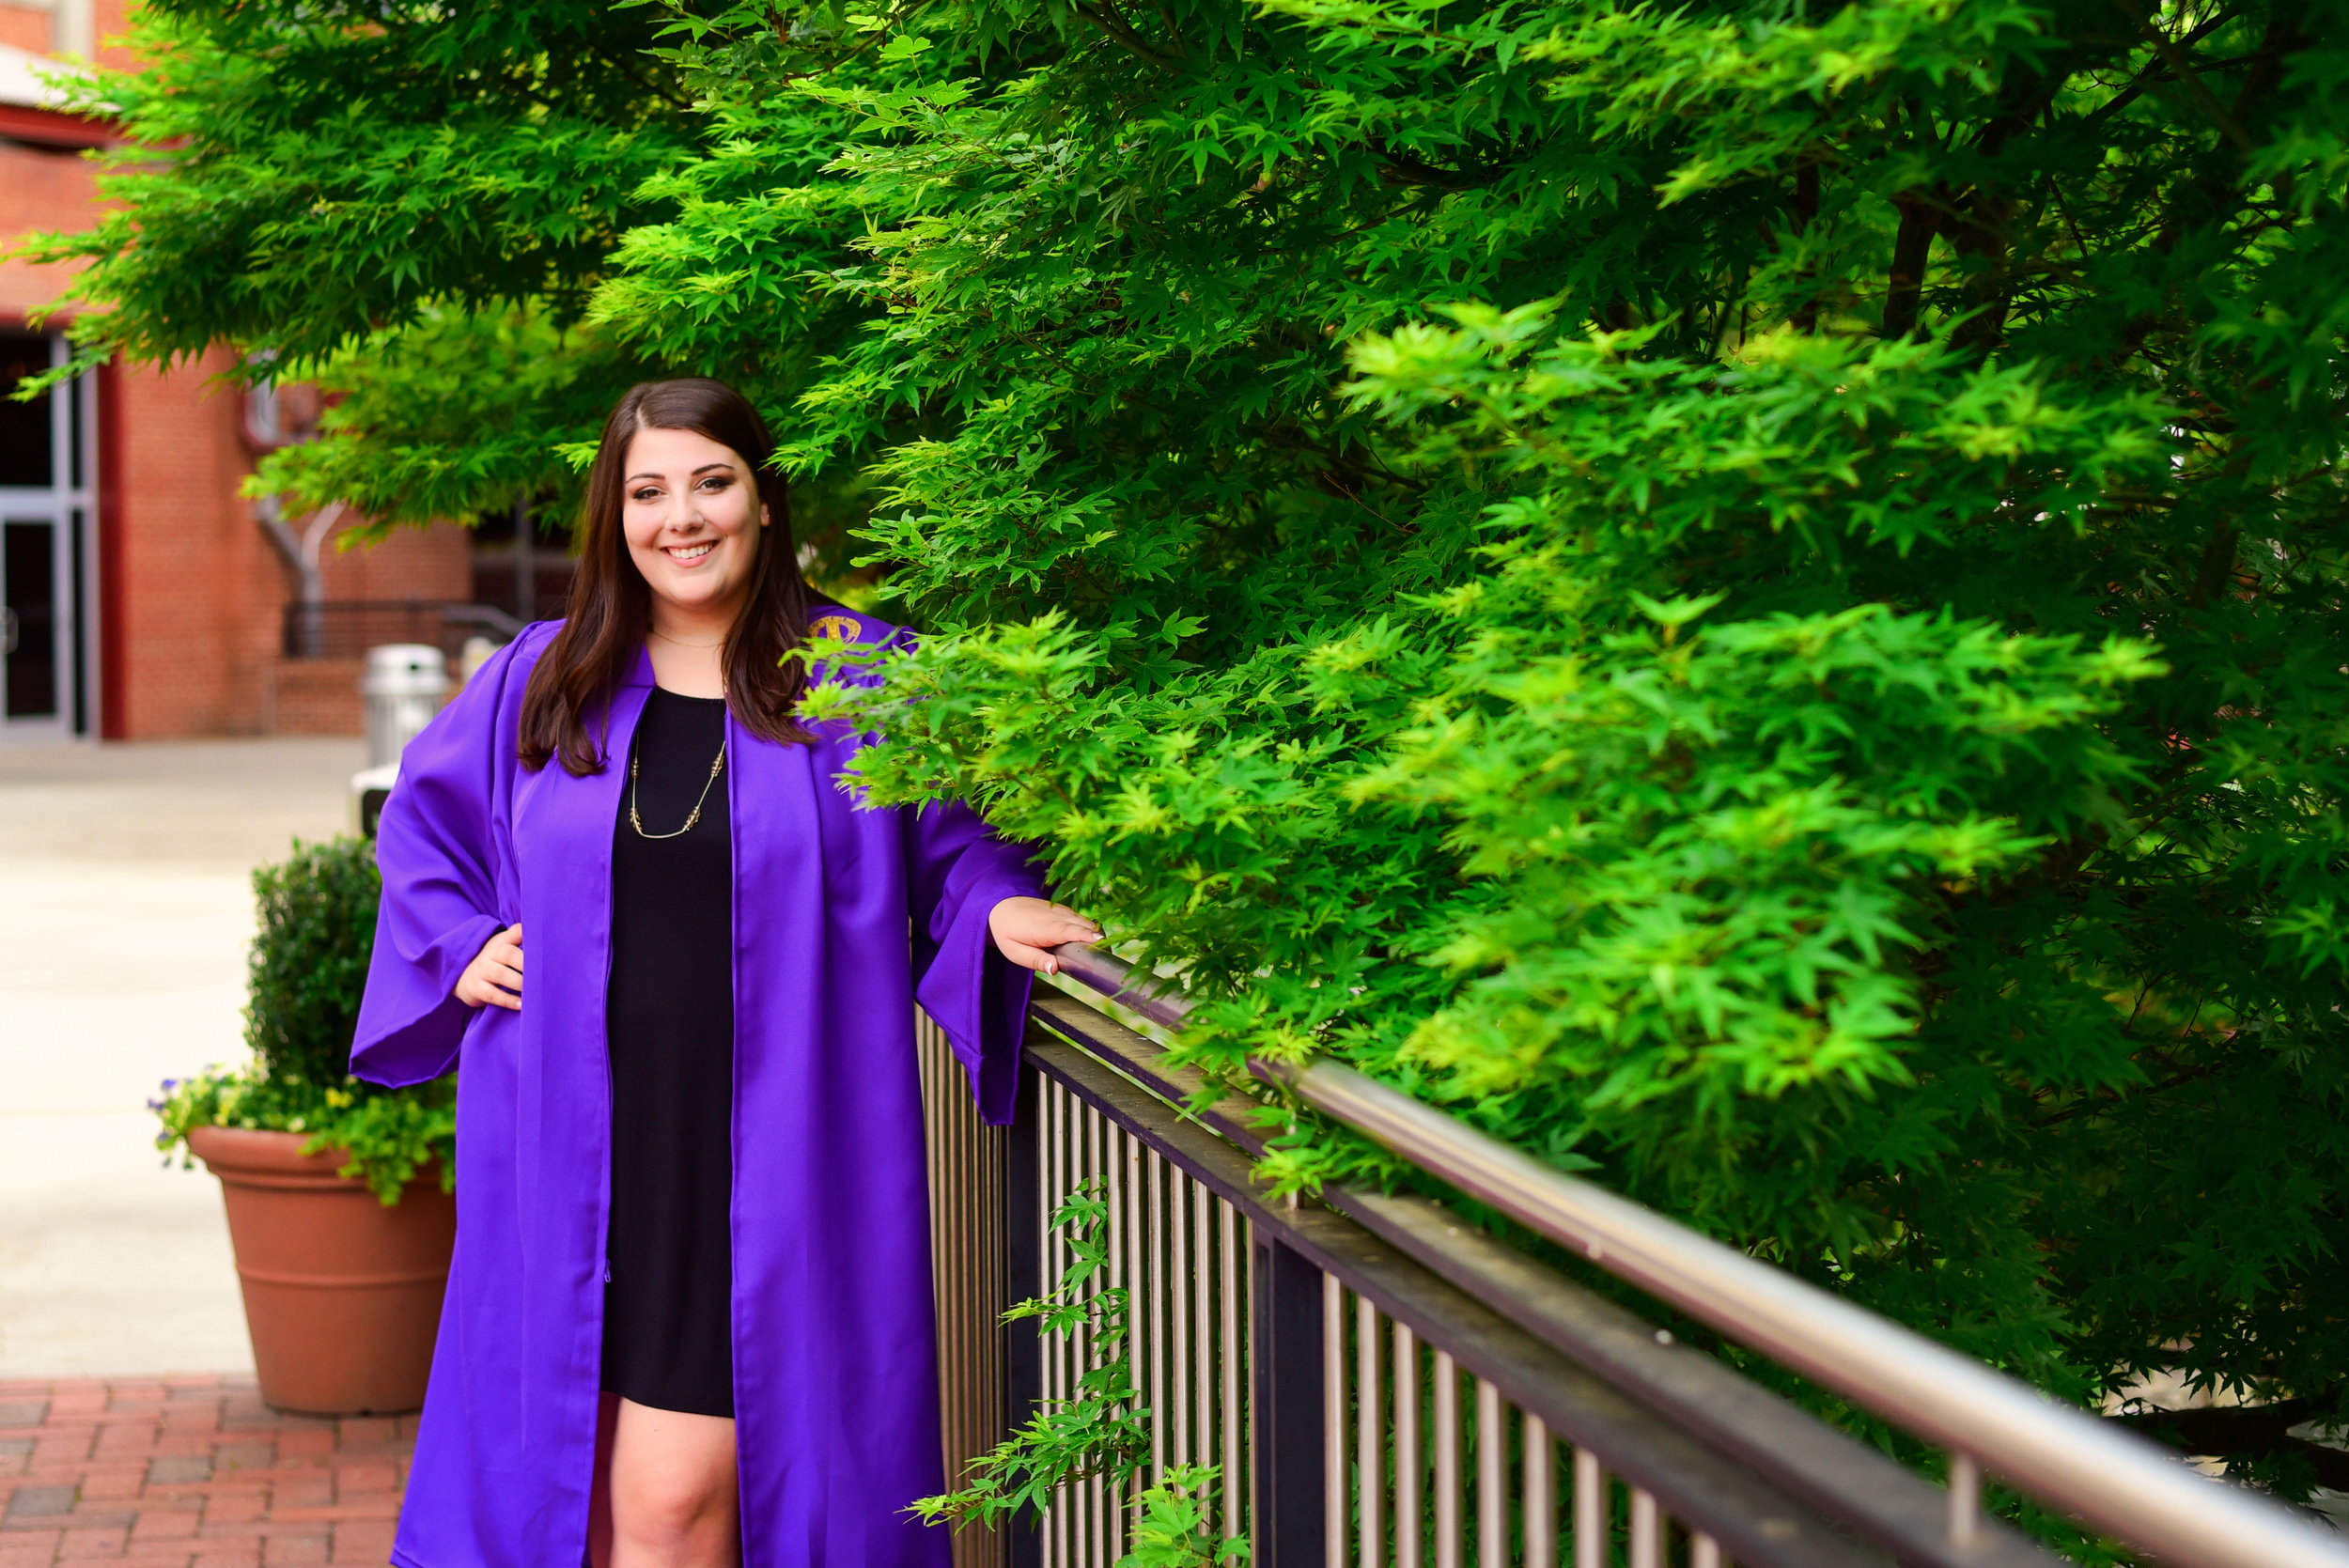 Western Carolina Senior Portraits